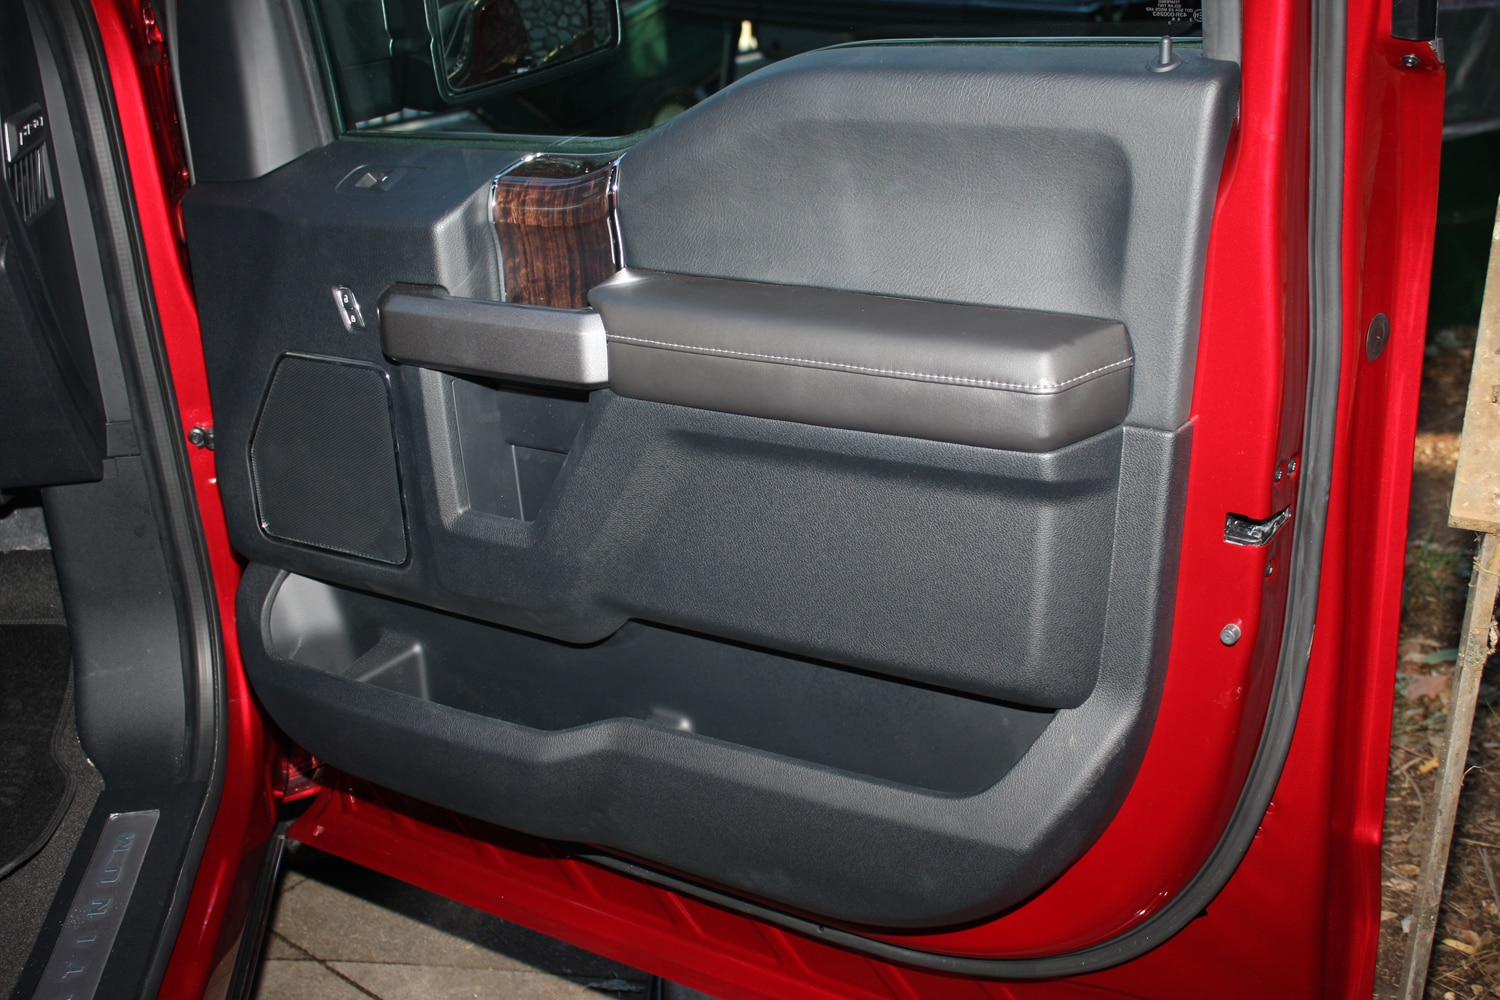 2015 Ford F150 unveiling la river 16 door panel